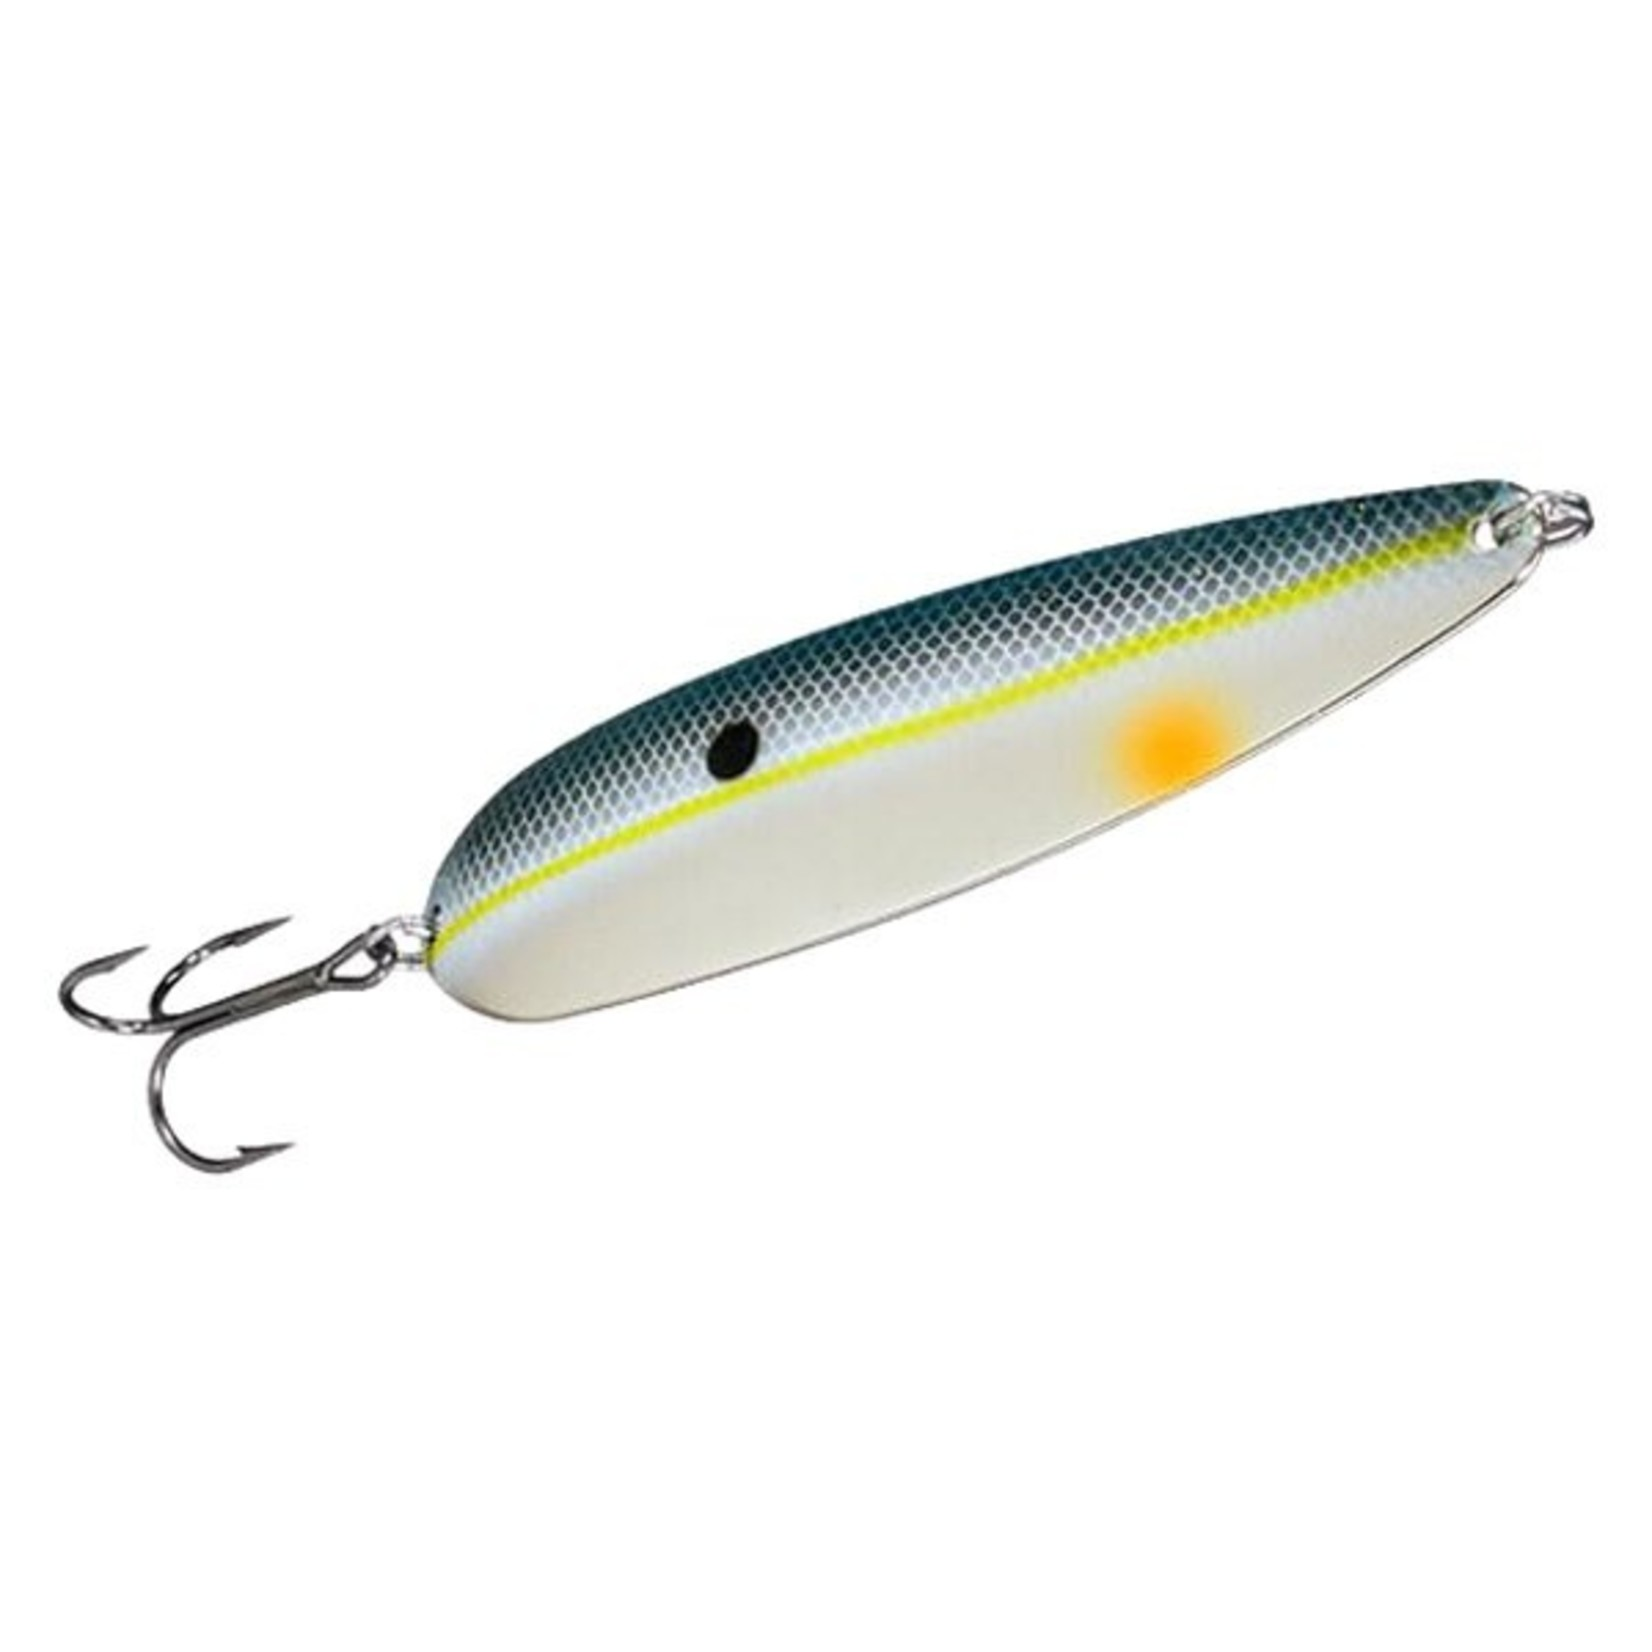 "Strike King 5 1/2"", 1 1/4 oz, Sexy Shad,1pk Strike King SSPN5.5-590 Sexy Spoon"